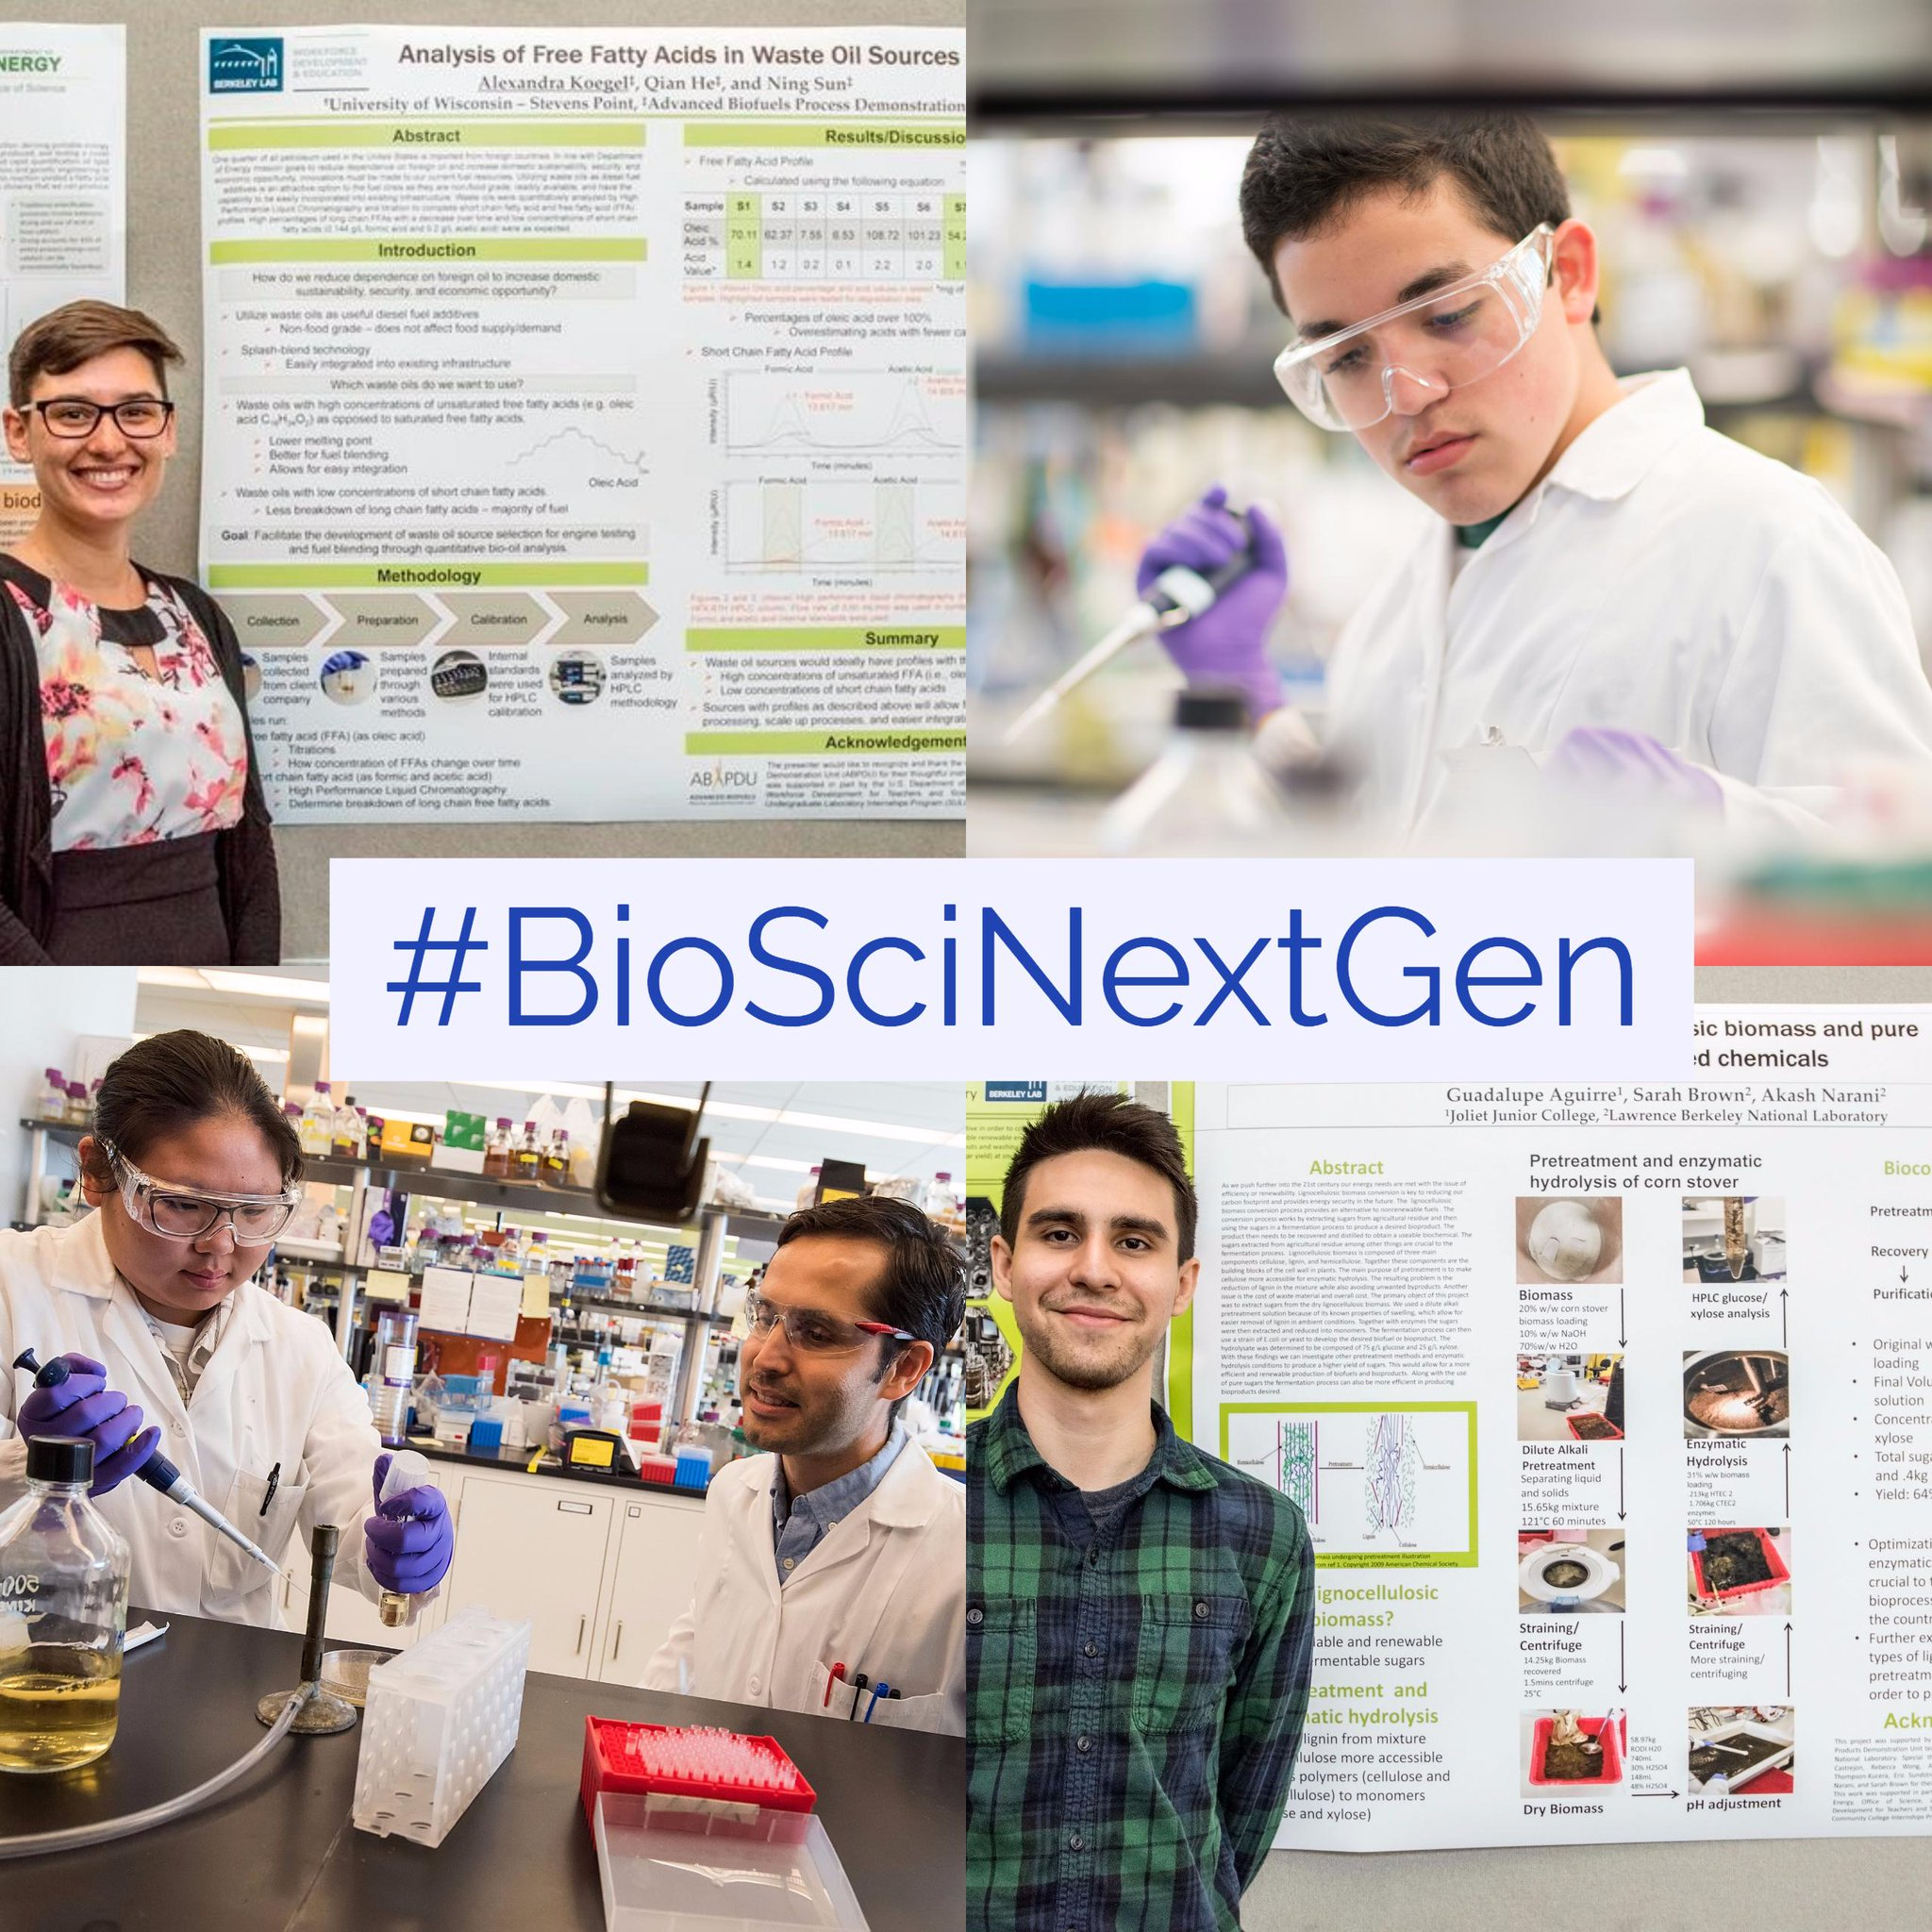 We are celebrating #STEMEducation @LBNLBioSci this month! Please like and RT our #BioSciNextGen tweets! https://t.co/YjfVDsY7xo